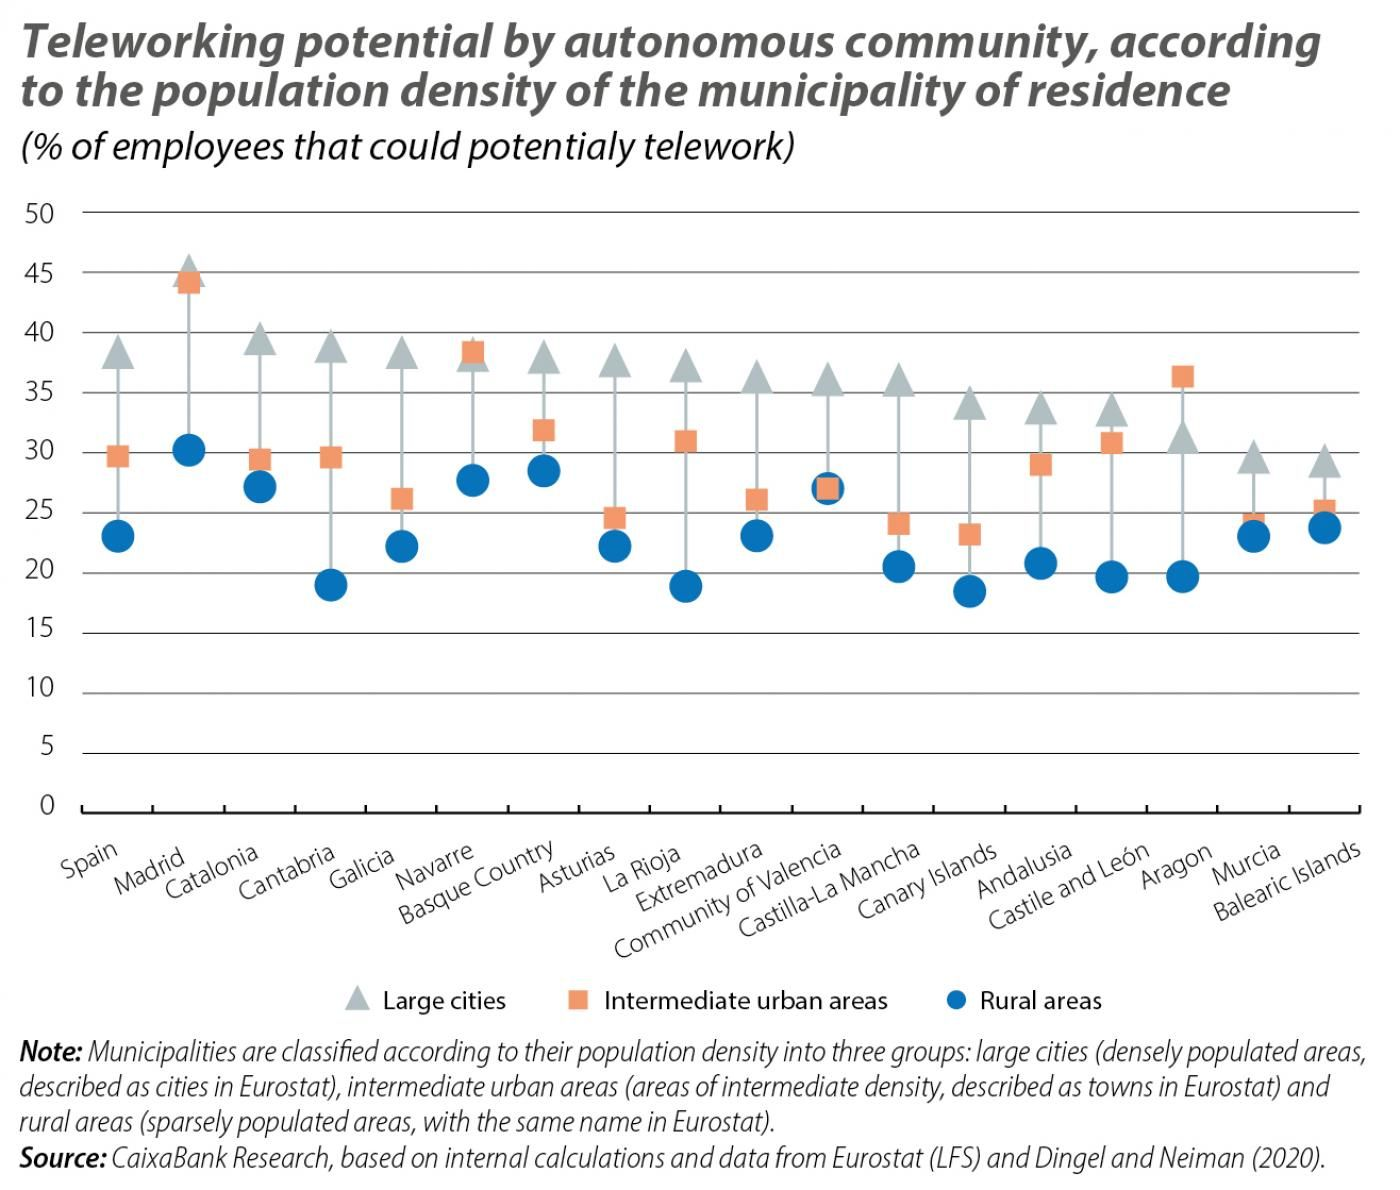 Teleworking potencial by autonomous community, according to the population density of the minicipality of residence